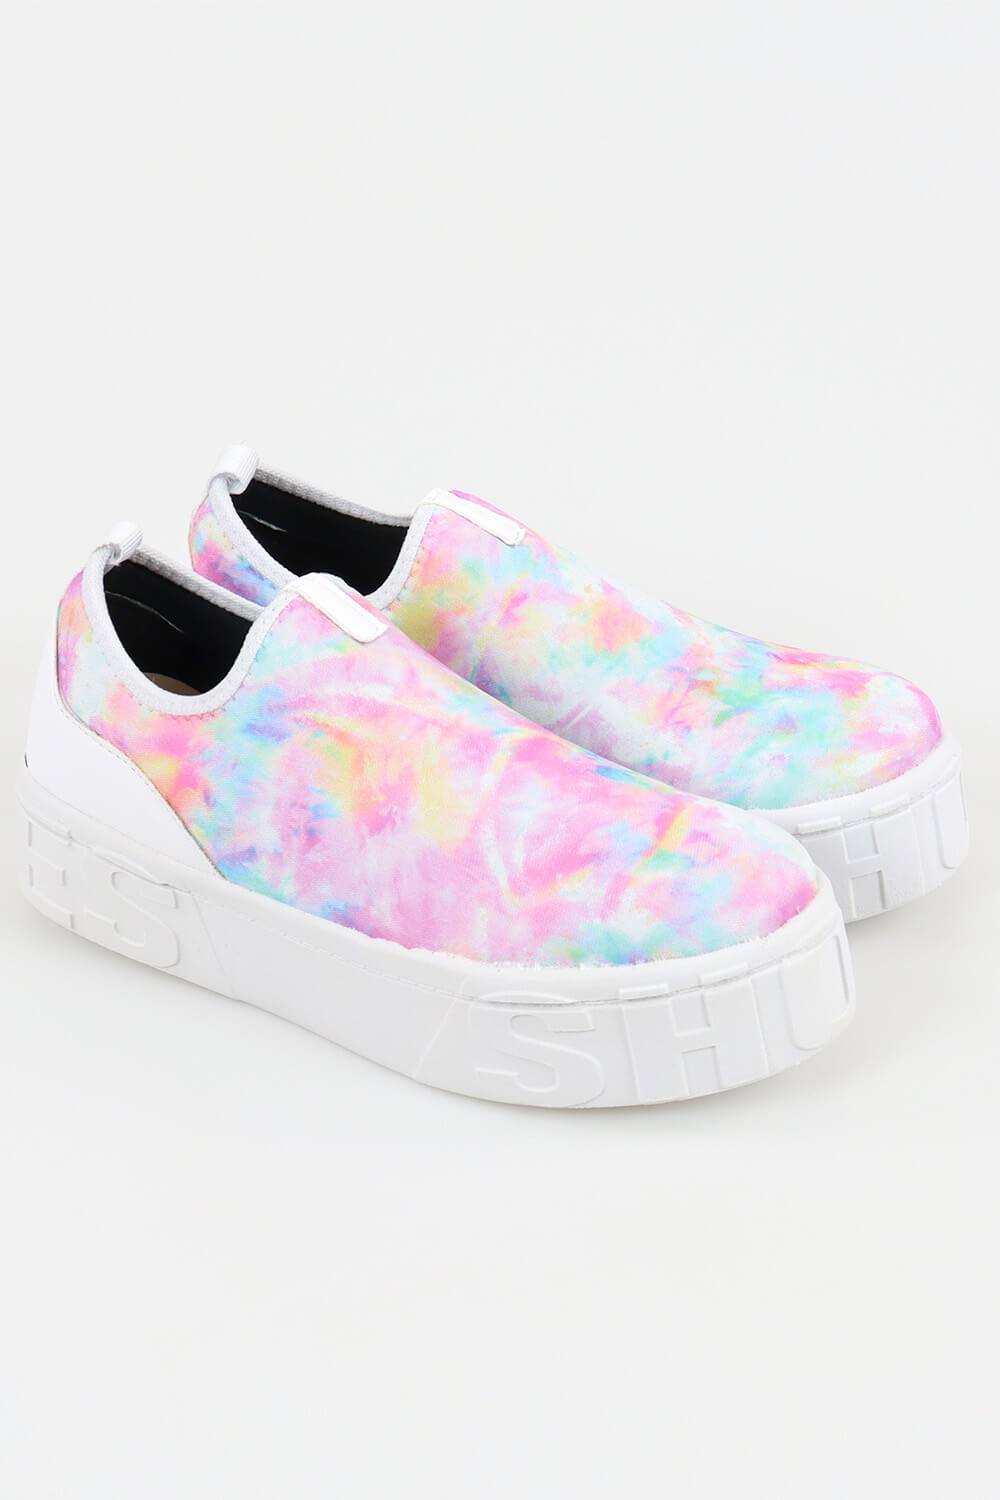 Slip On Chiquiteira Casual Shoes Helanca Tie Dye AC